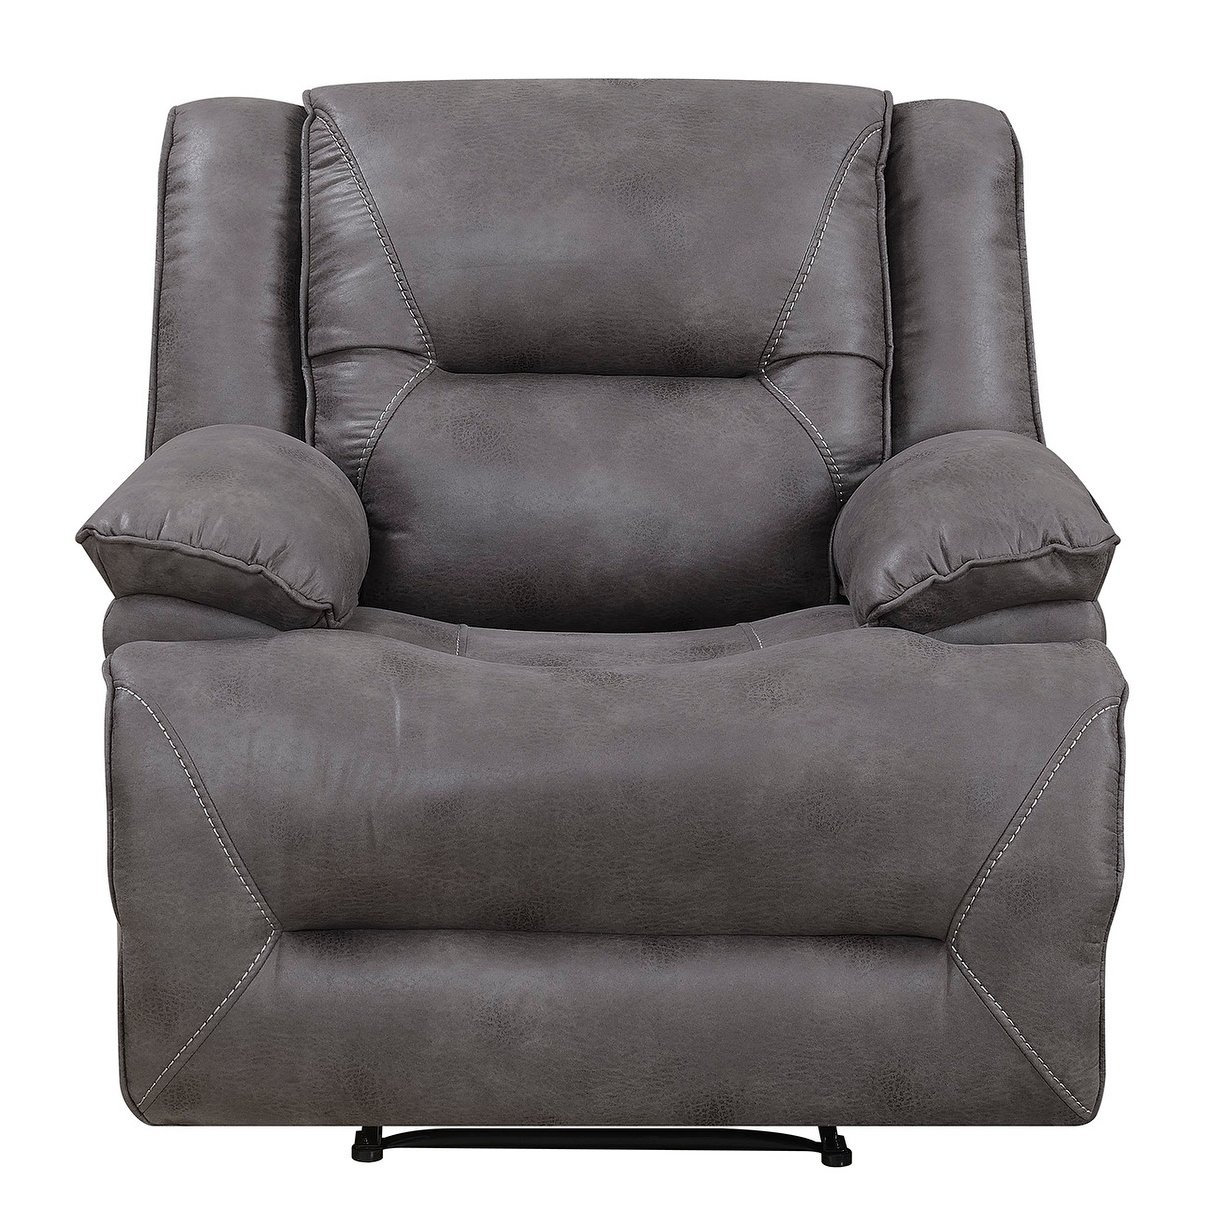 Shop Dylan Power Recliner With Memory Foam Seat Topper And Usb Within Travis Dk Grey Leather 6 Piece Power Reclining Sectionals With Power Headrest & Usb (Image 21 of 25)